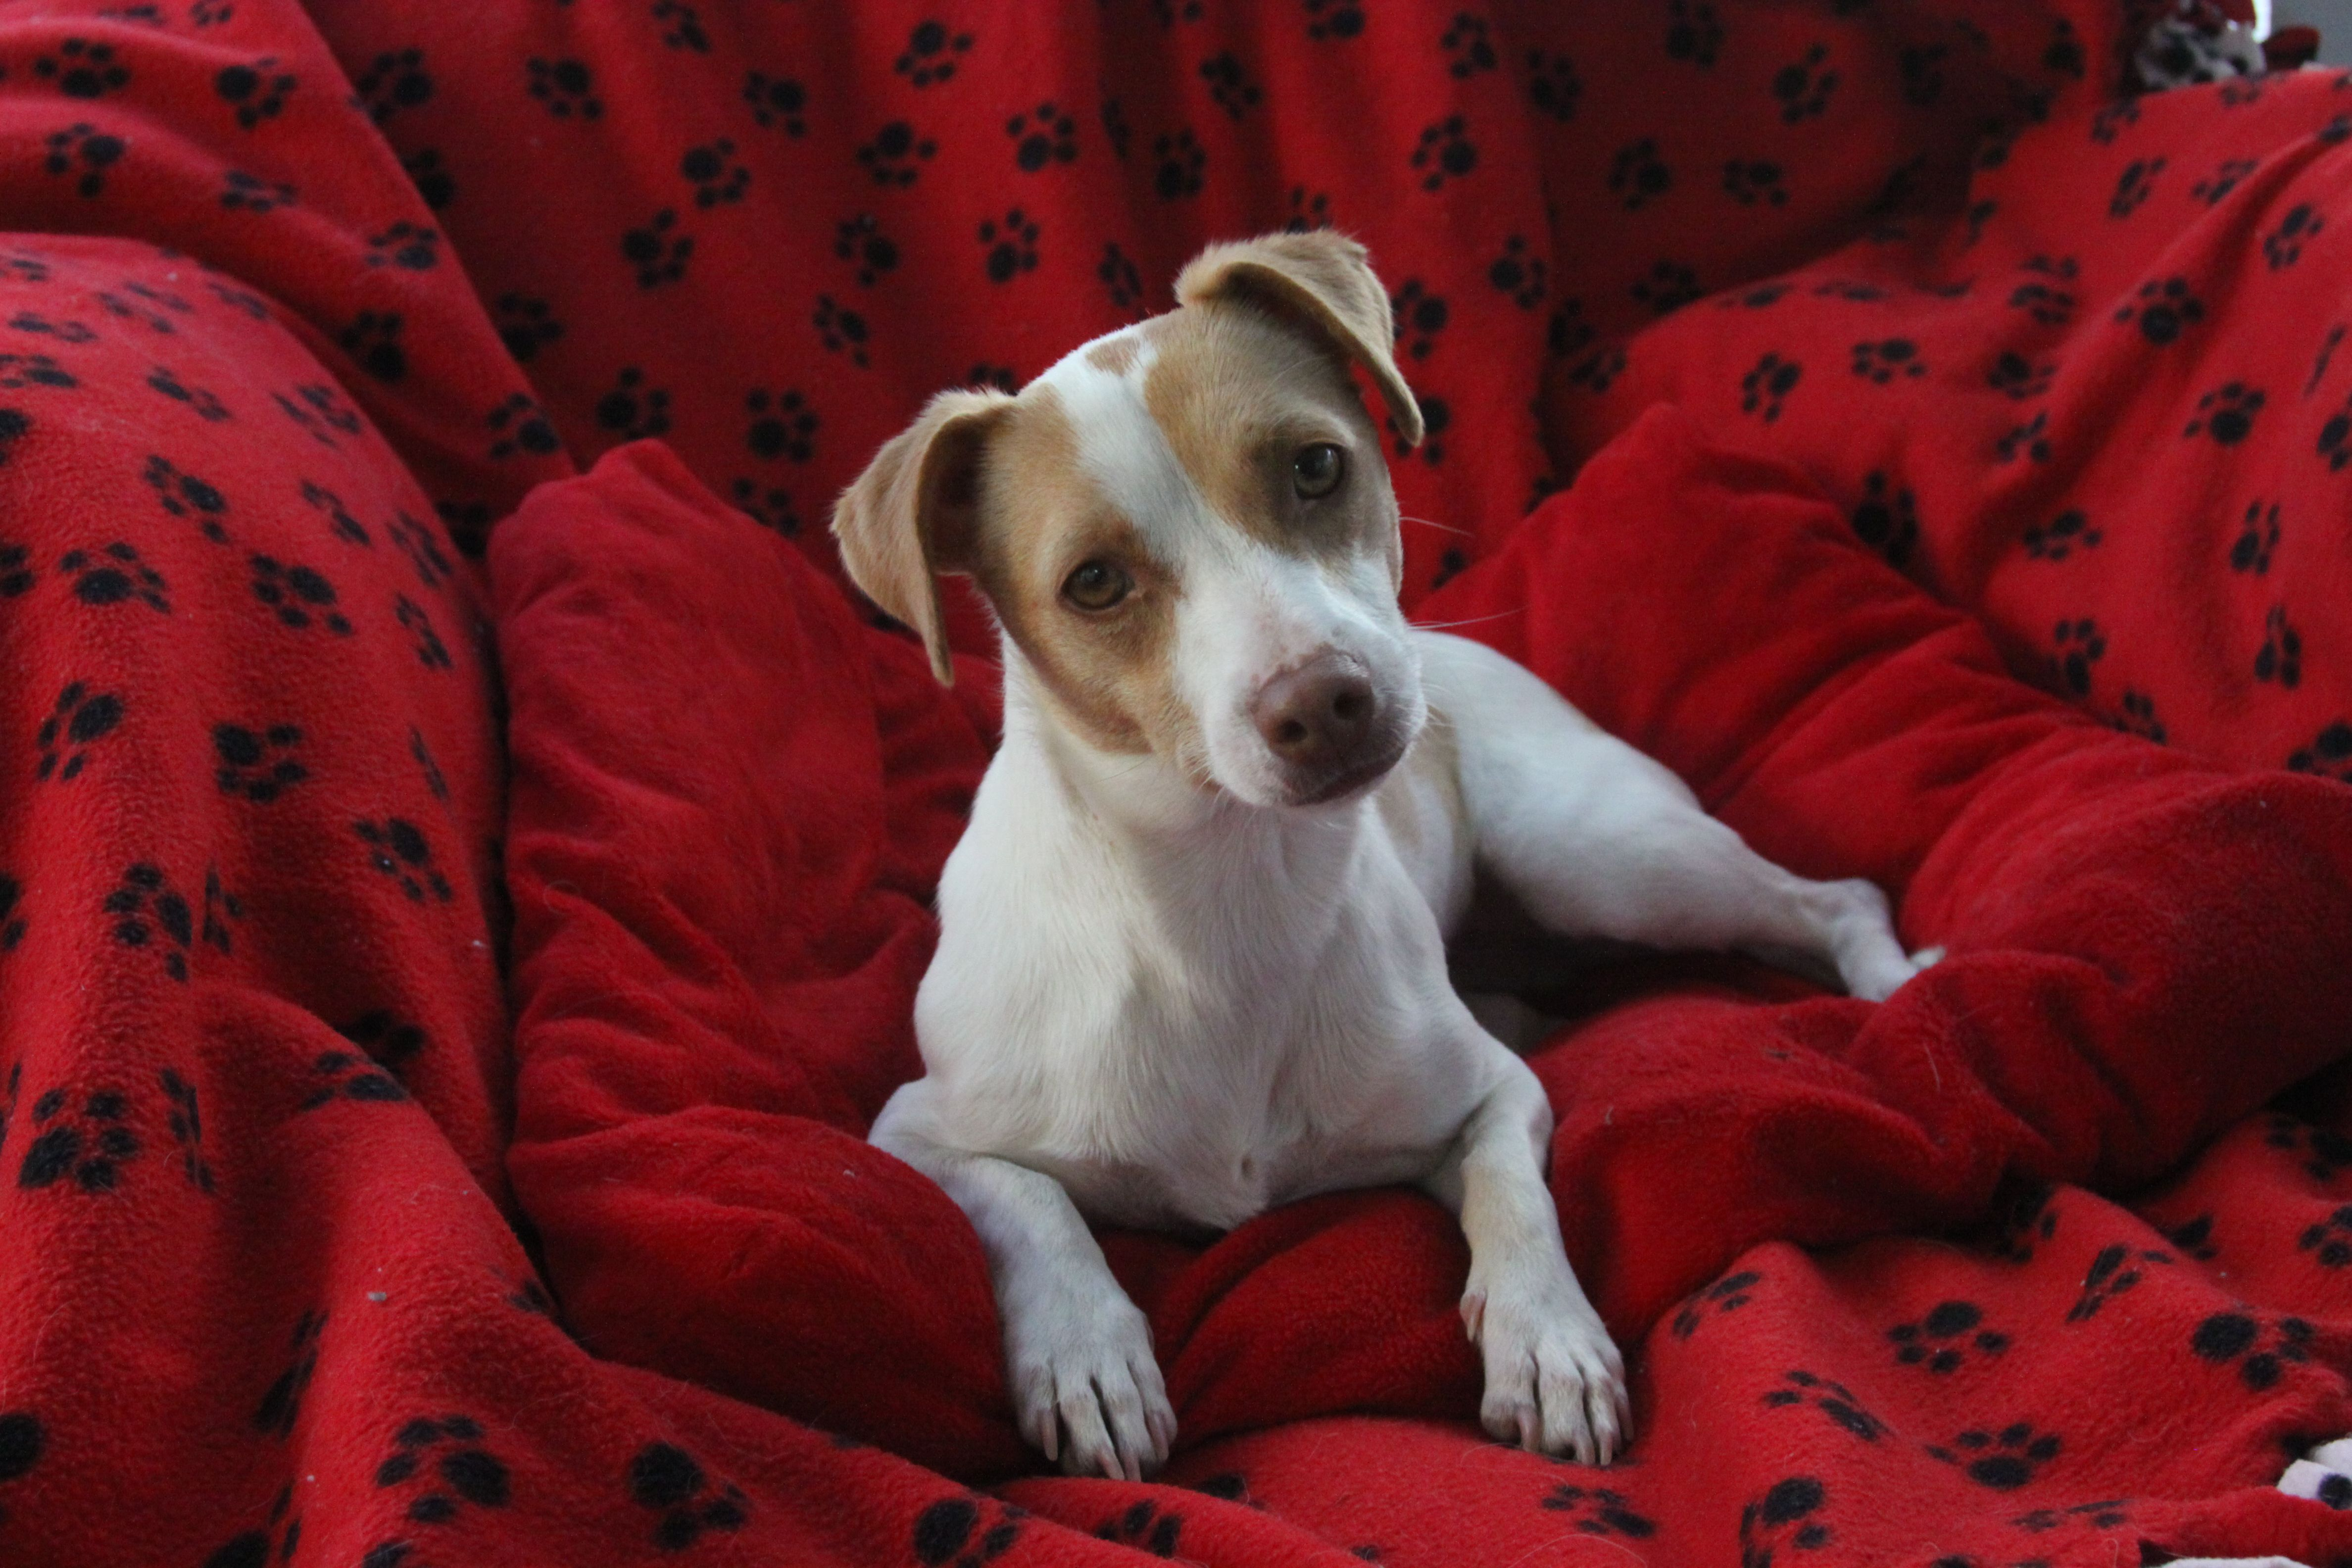 libby is available for adoption on oct 20th 2013 at lucky pup dog